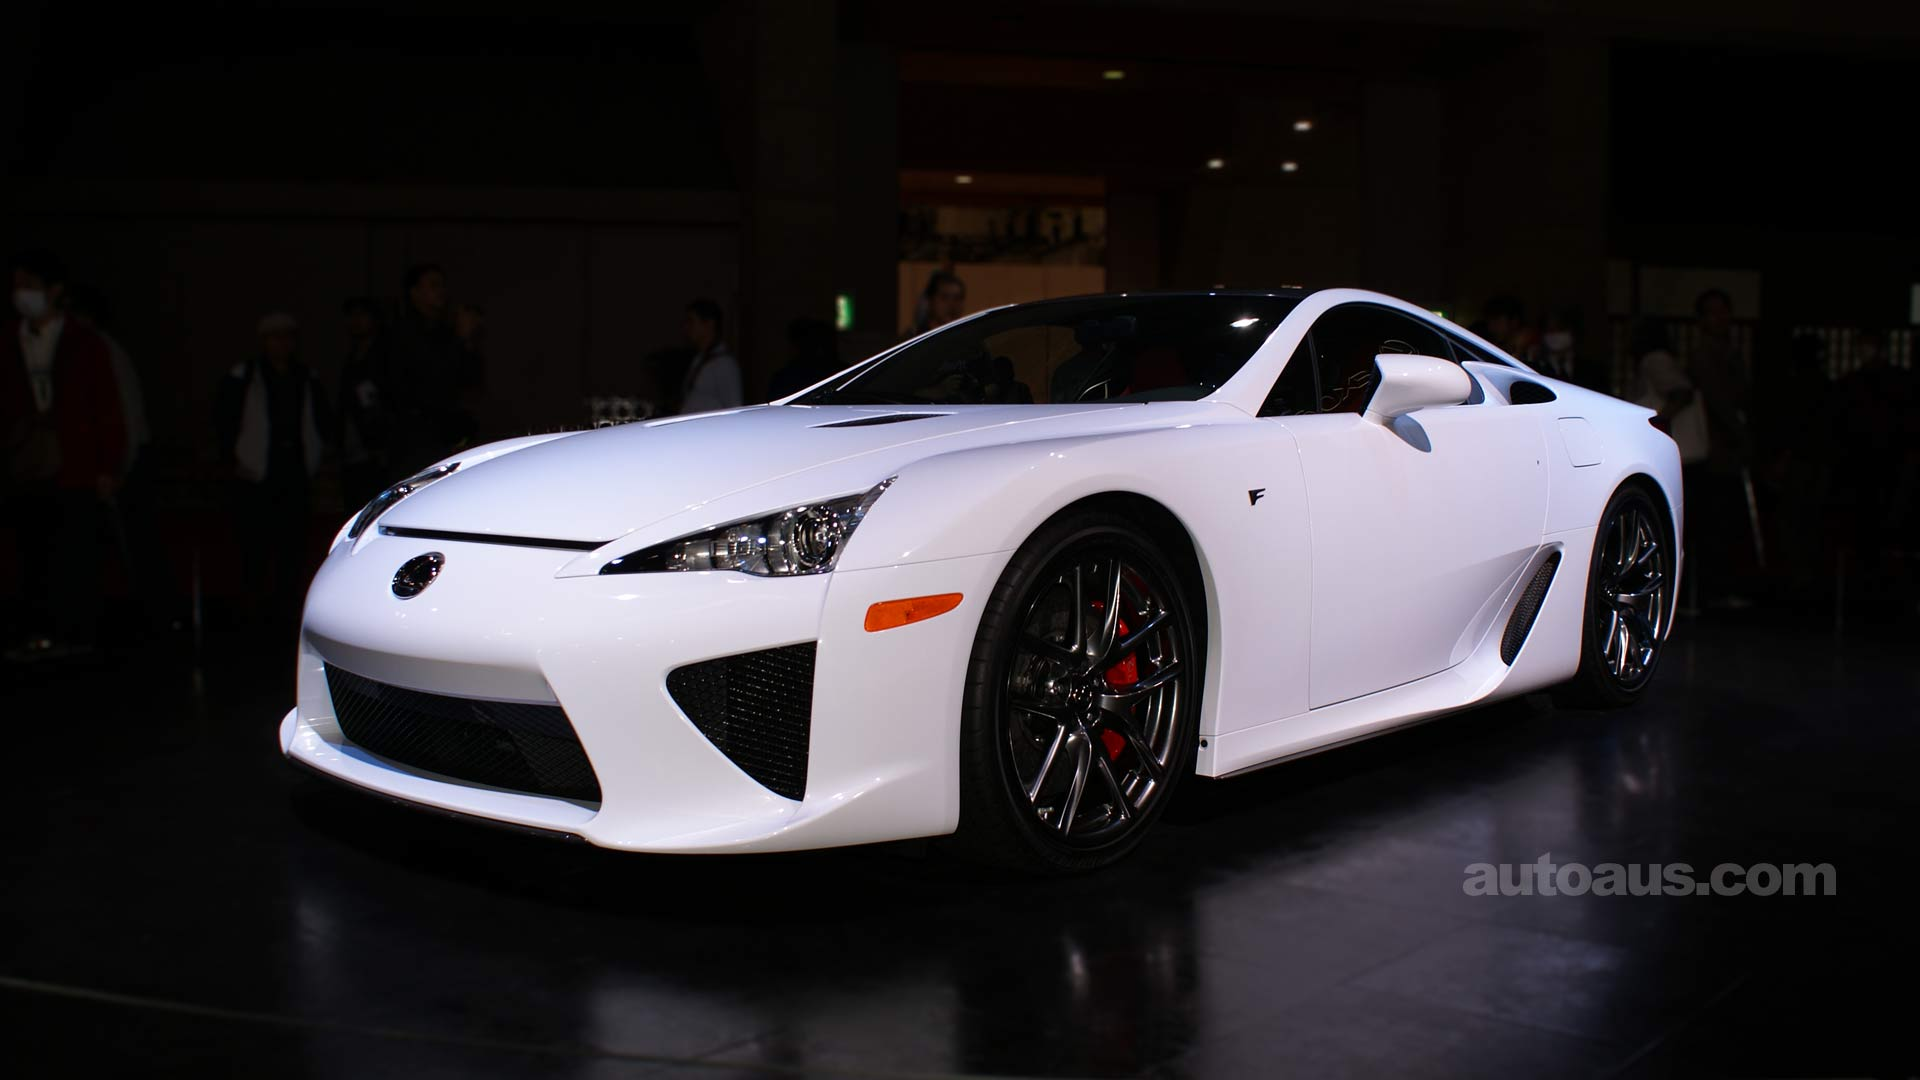 wallpapers lexus lfa - photo #28